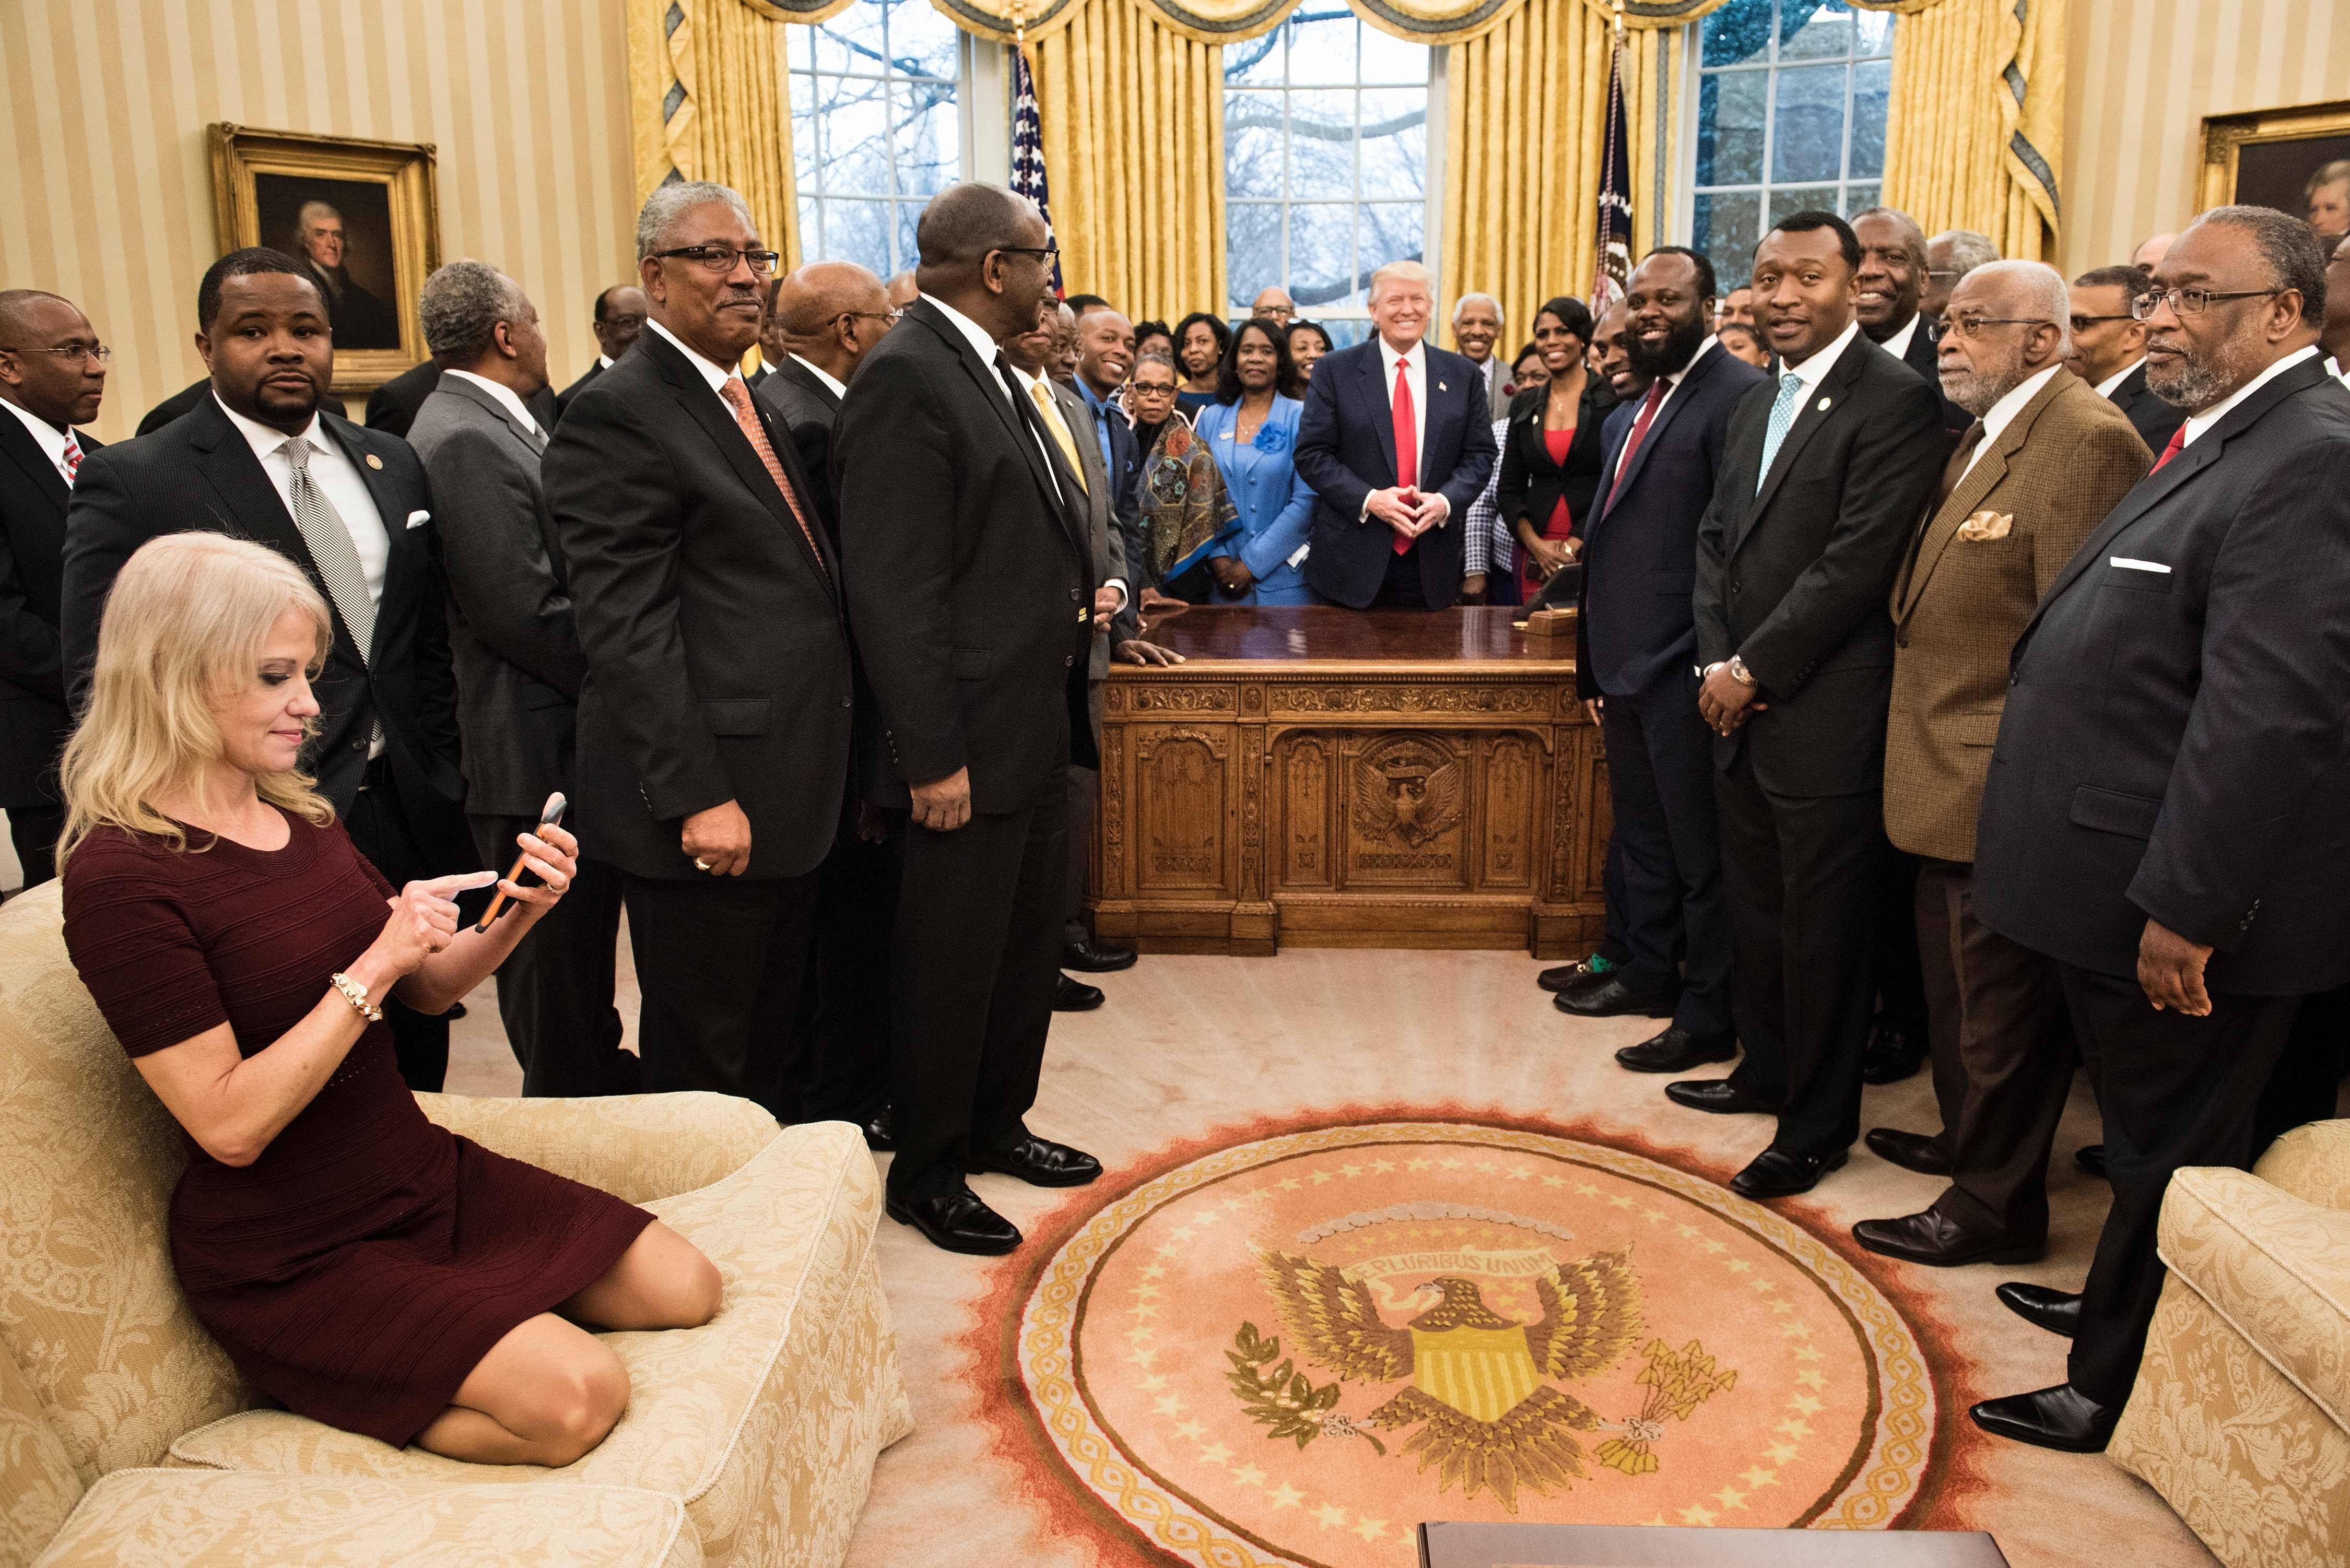 Counselor to the President Kellyanne Conway checks her phone after taking a photo as President Donald Trump and leaders of historically black universities and colleges pose for a group photo in the Oval Office of the White House before a meeting with Vice President Mike Pence on Feb. 27, 2017 in Washington, DC.